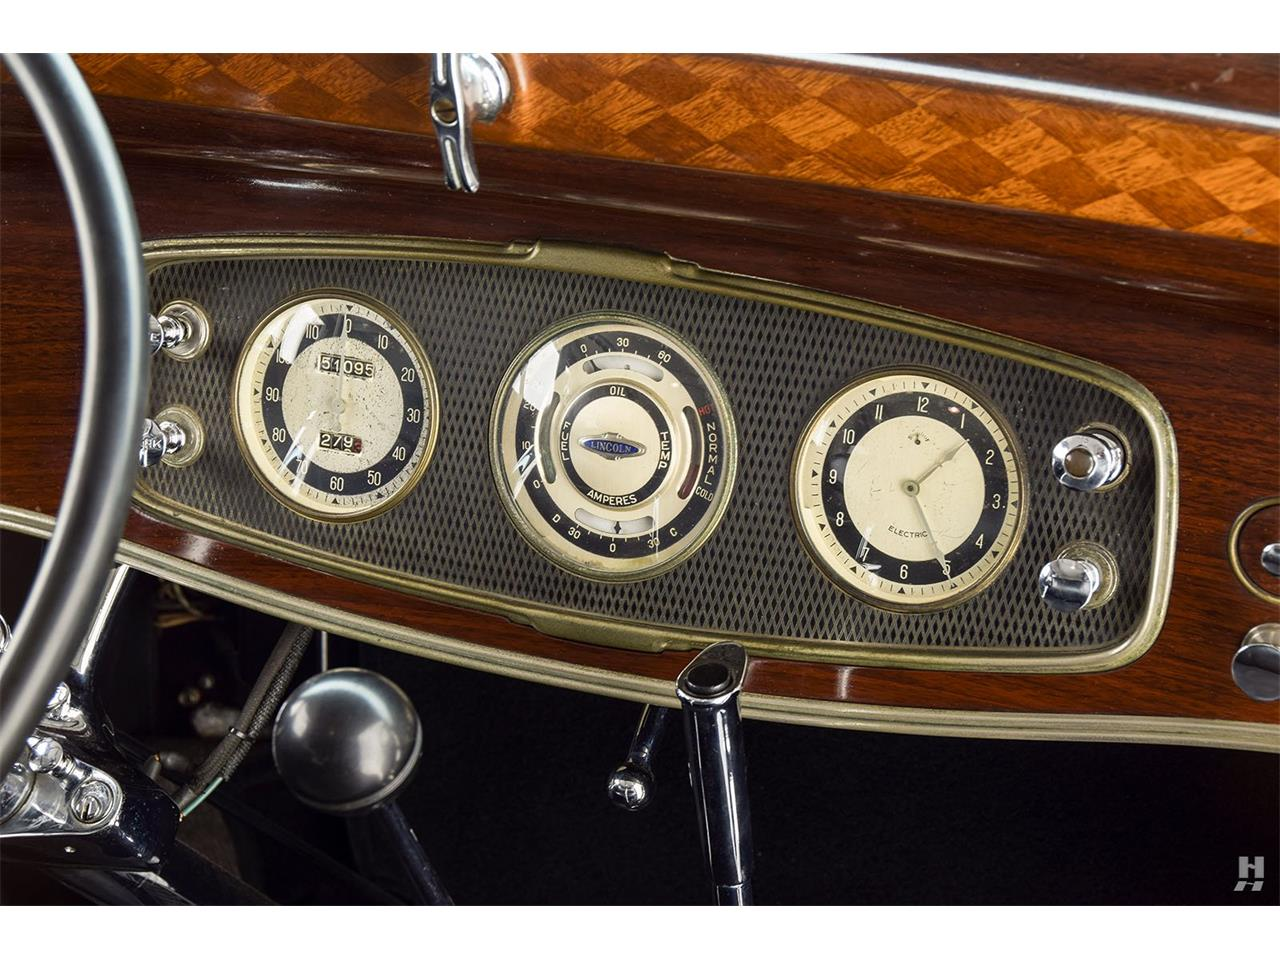 Large Picture of Classic 1934 Lincoln Antique located in Saint Louis Missouri - $129,500.00 - LBT2